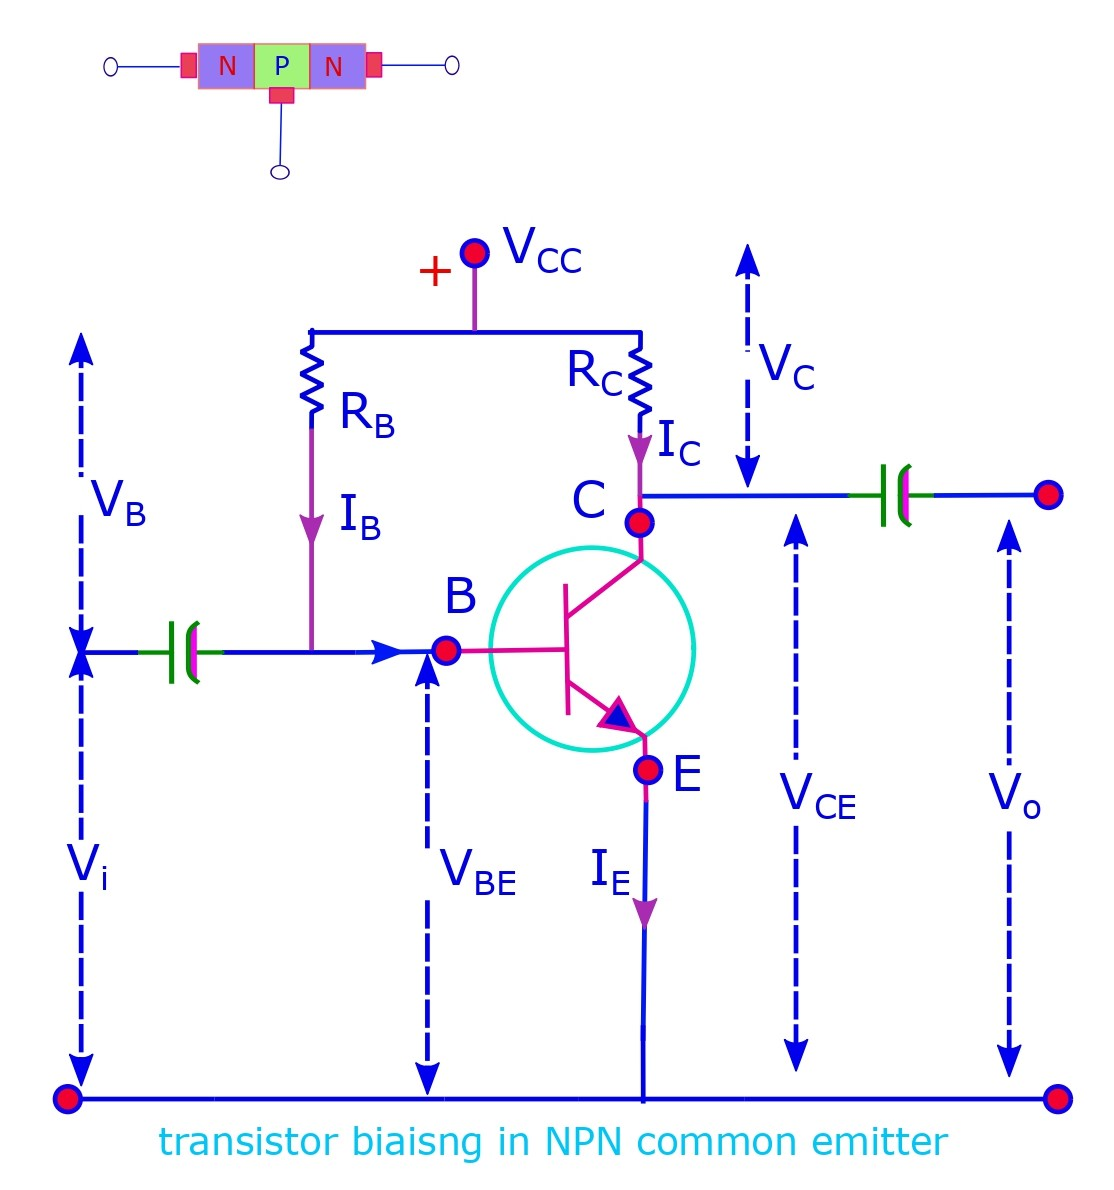 The common emitter configuration with a n-p-n transistor is base biased.